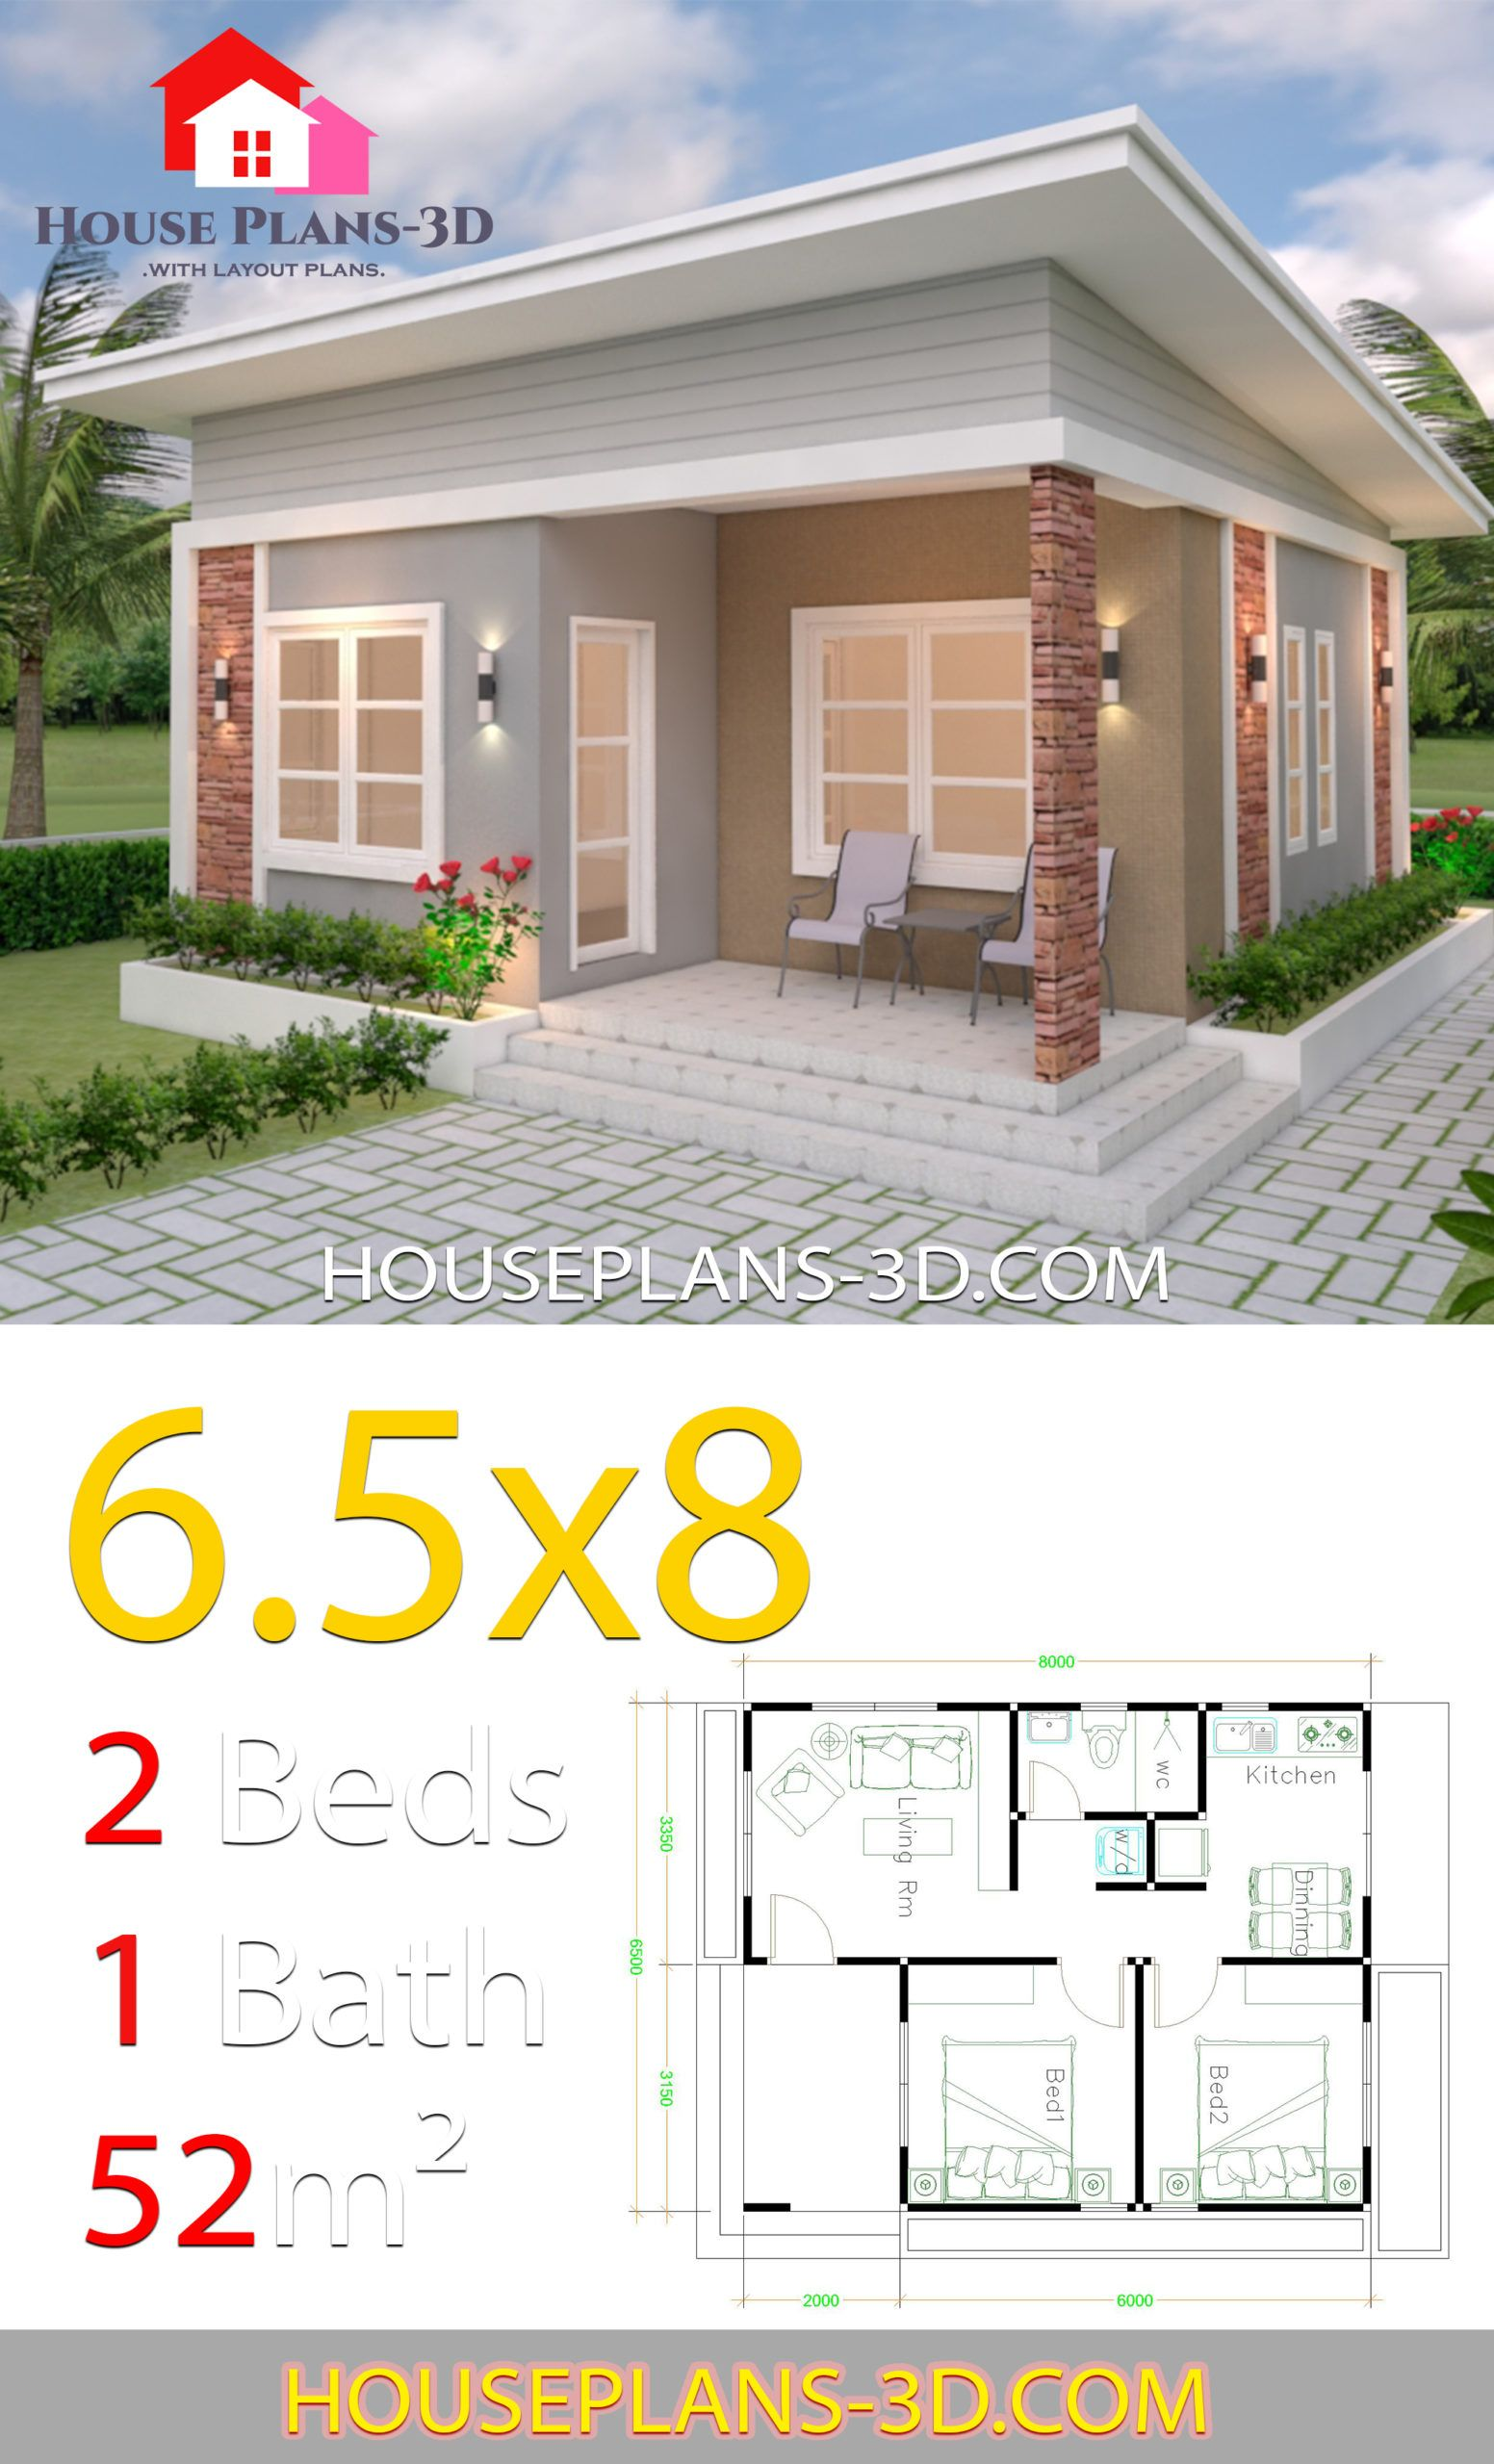 House Design Plans 6 5x8 With 2 Bedrooms Shed Roof House Plans 3d Affordable House Plans Diy House Plans House Construction Plan